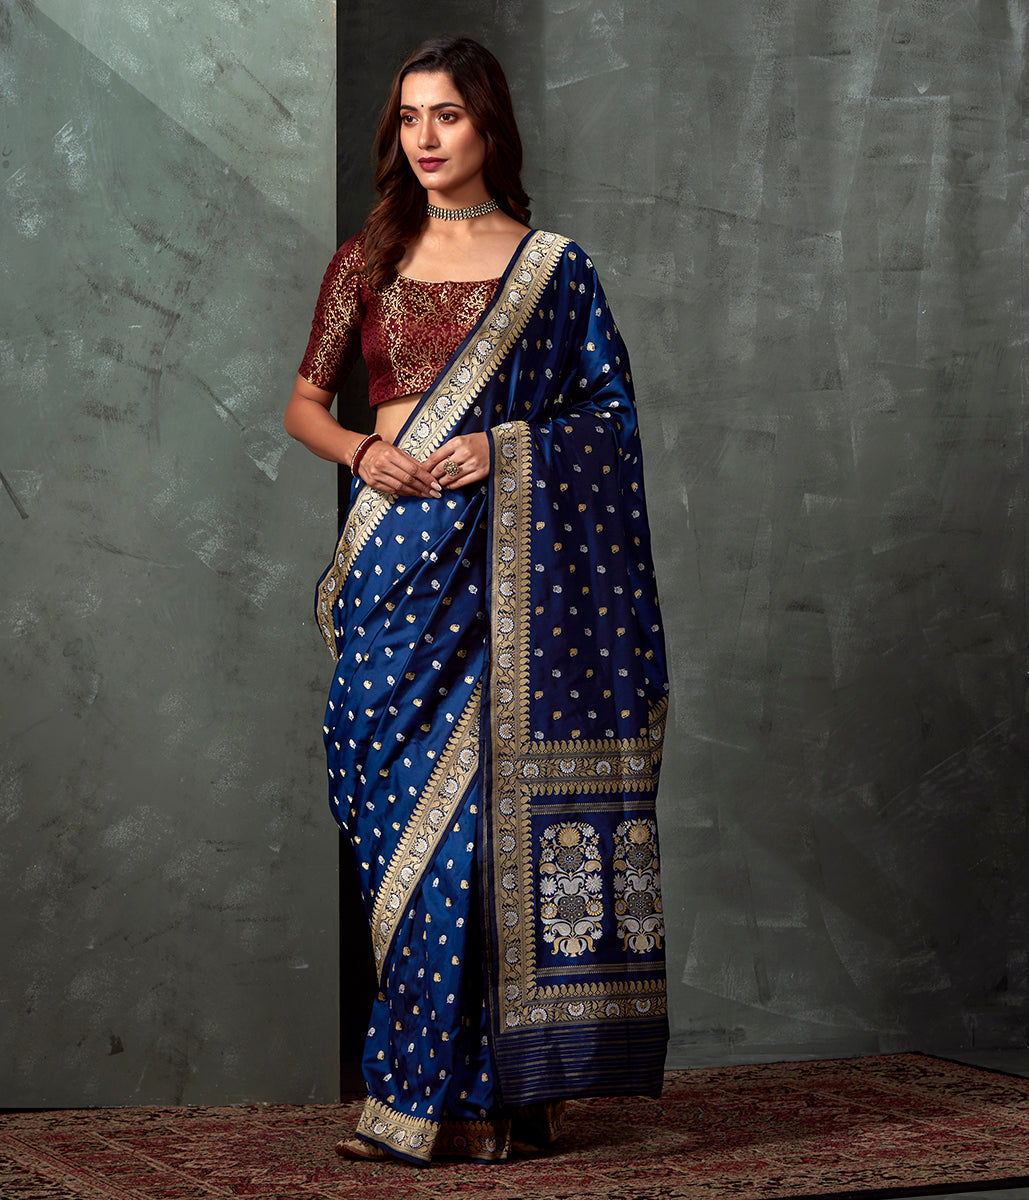 Handwoven Banaras Baluchari in Indigo Blue with Zari